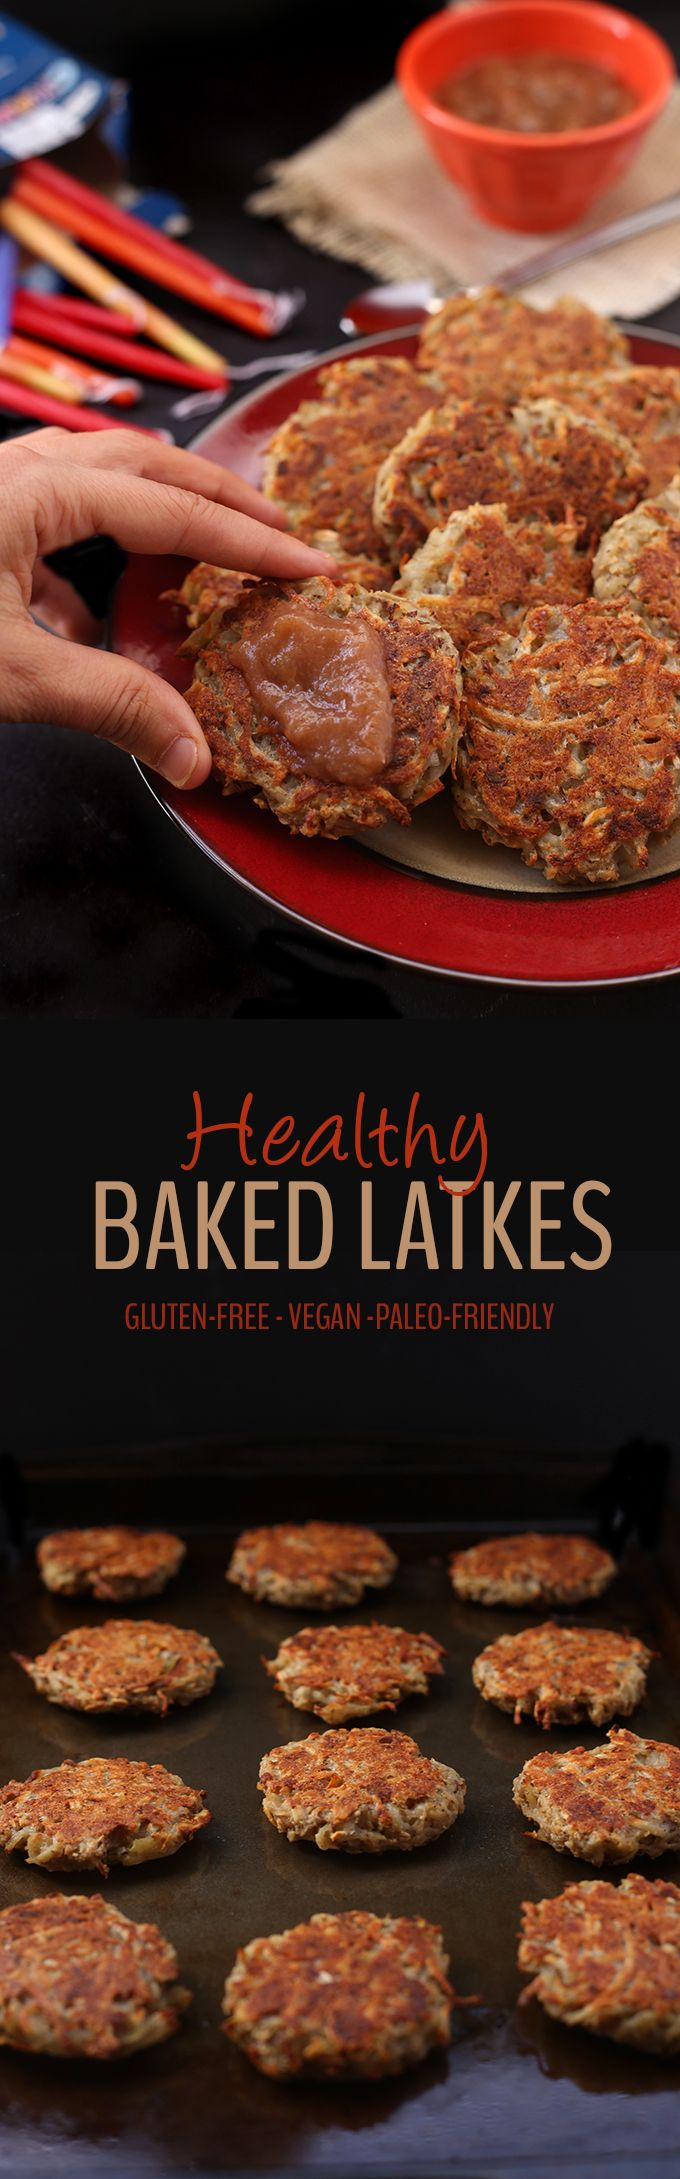 No need to spend hours frying and smelling up your house with these Easy and Healthy Baked Latkes. They're perfect for Hanukkah or a delicious dinner side recipe. You would never know they're gluten-free and vegan too!